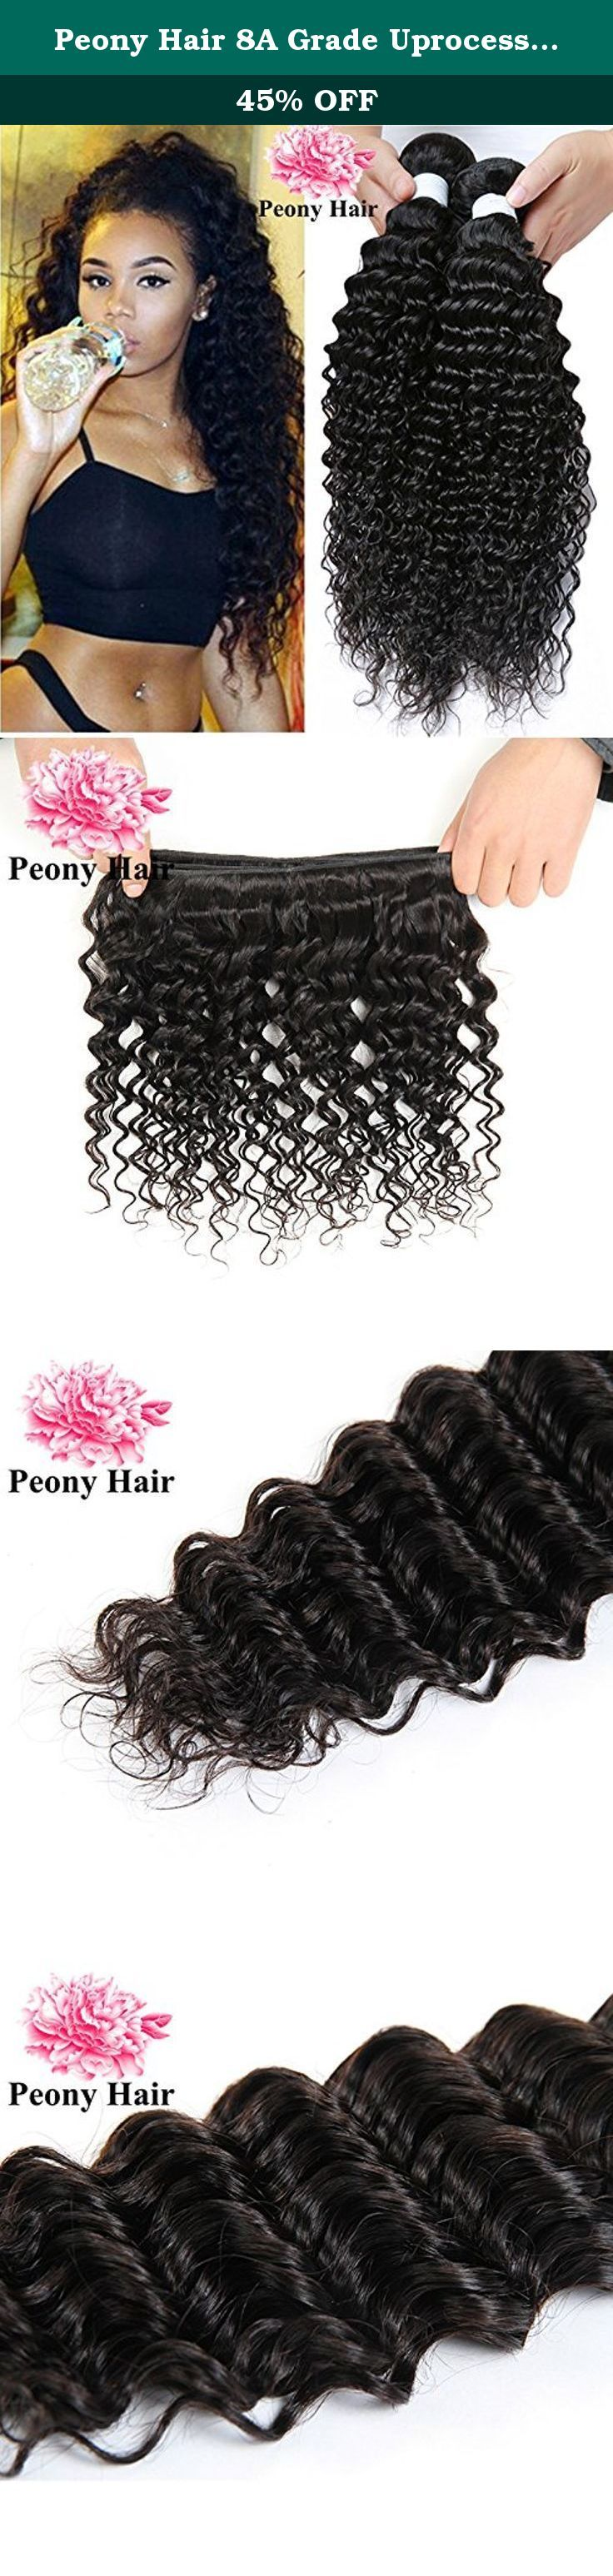 """Peony Hair 8A Grade Uprocessed Brazilian Deep Wave virgin hair 4 Bundles Remy Human Hair Natural Color (18 20 22 24, Natural Color). Every shopper has claimed that they are selling """"virgin hair"""" for $20 a pack...Really??? Are you serious??? if u have ever had any experience with extensions, you must know that you get what you pay for.And we all know how expensive it is to get hair installed...Why not spend an extra dollars and get quality hair that will last. It is very lucky that we…"""